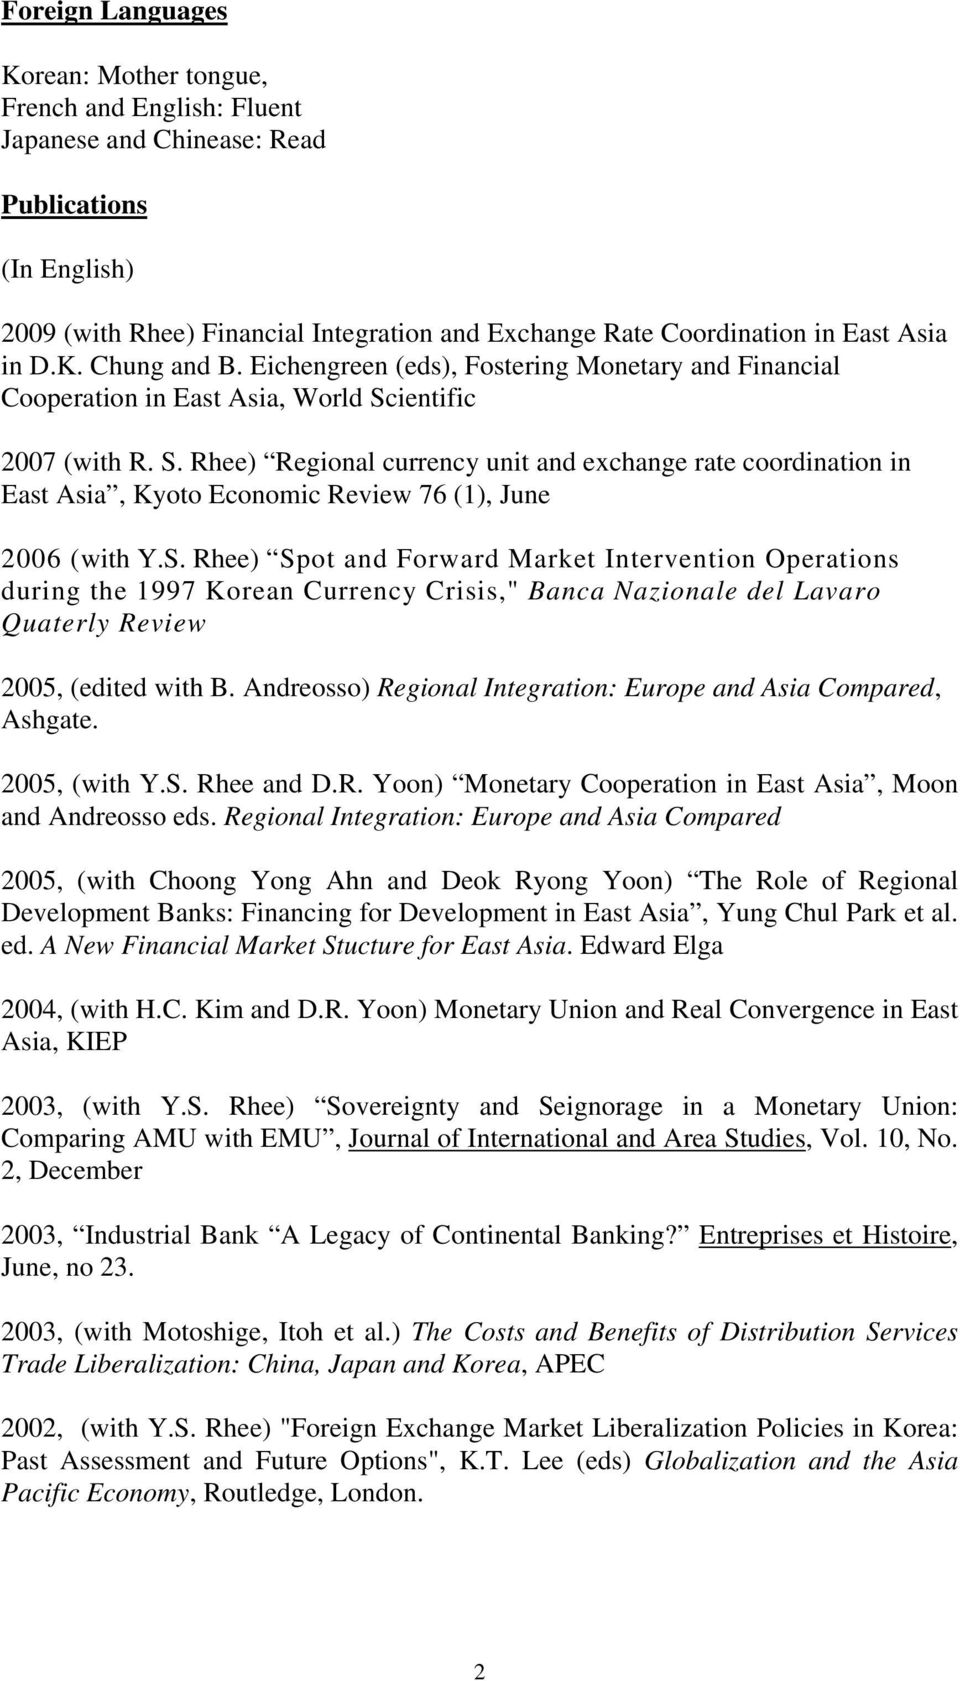 "ientific 2007 (with R. S. Rhee) Regional currency unit and exchange rate coordination in East Asia, Kyoto Economic Review 76 (1), June 2006 (with Y.S. Rhee) Spot and Forward Market Intervention Operations during the 1997 Korean Currency Crisis,"" Banca Nazionale del Lavaro Quaterly Review 2005, (edited with B."